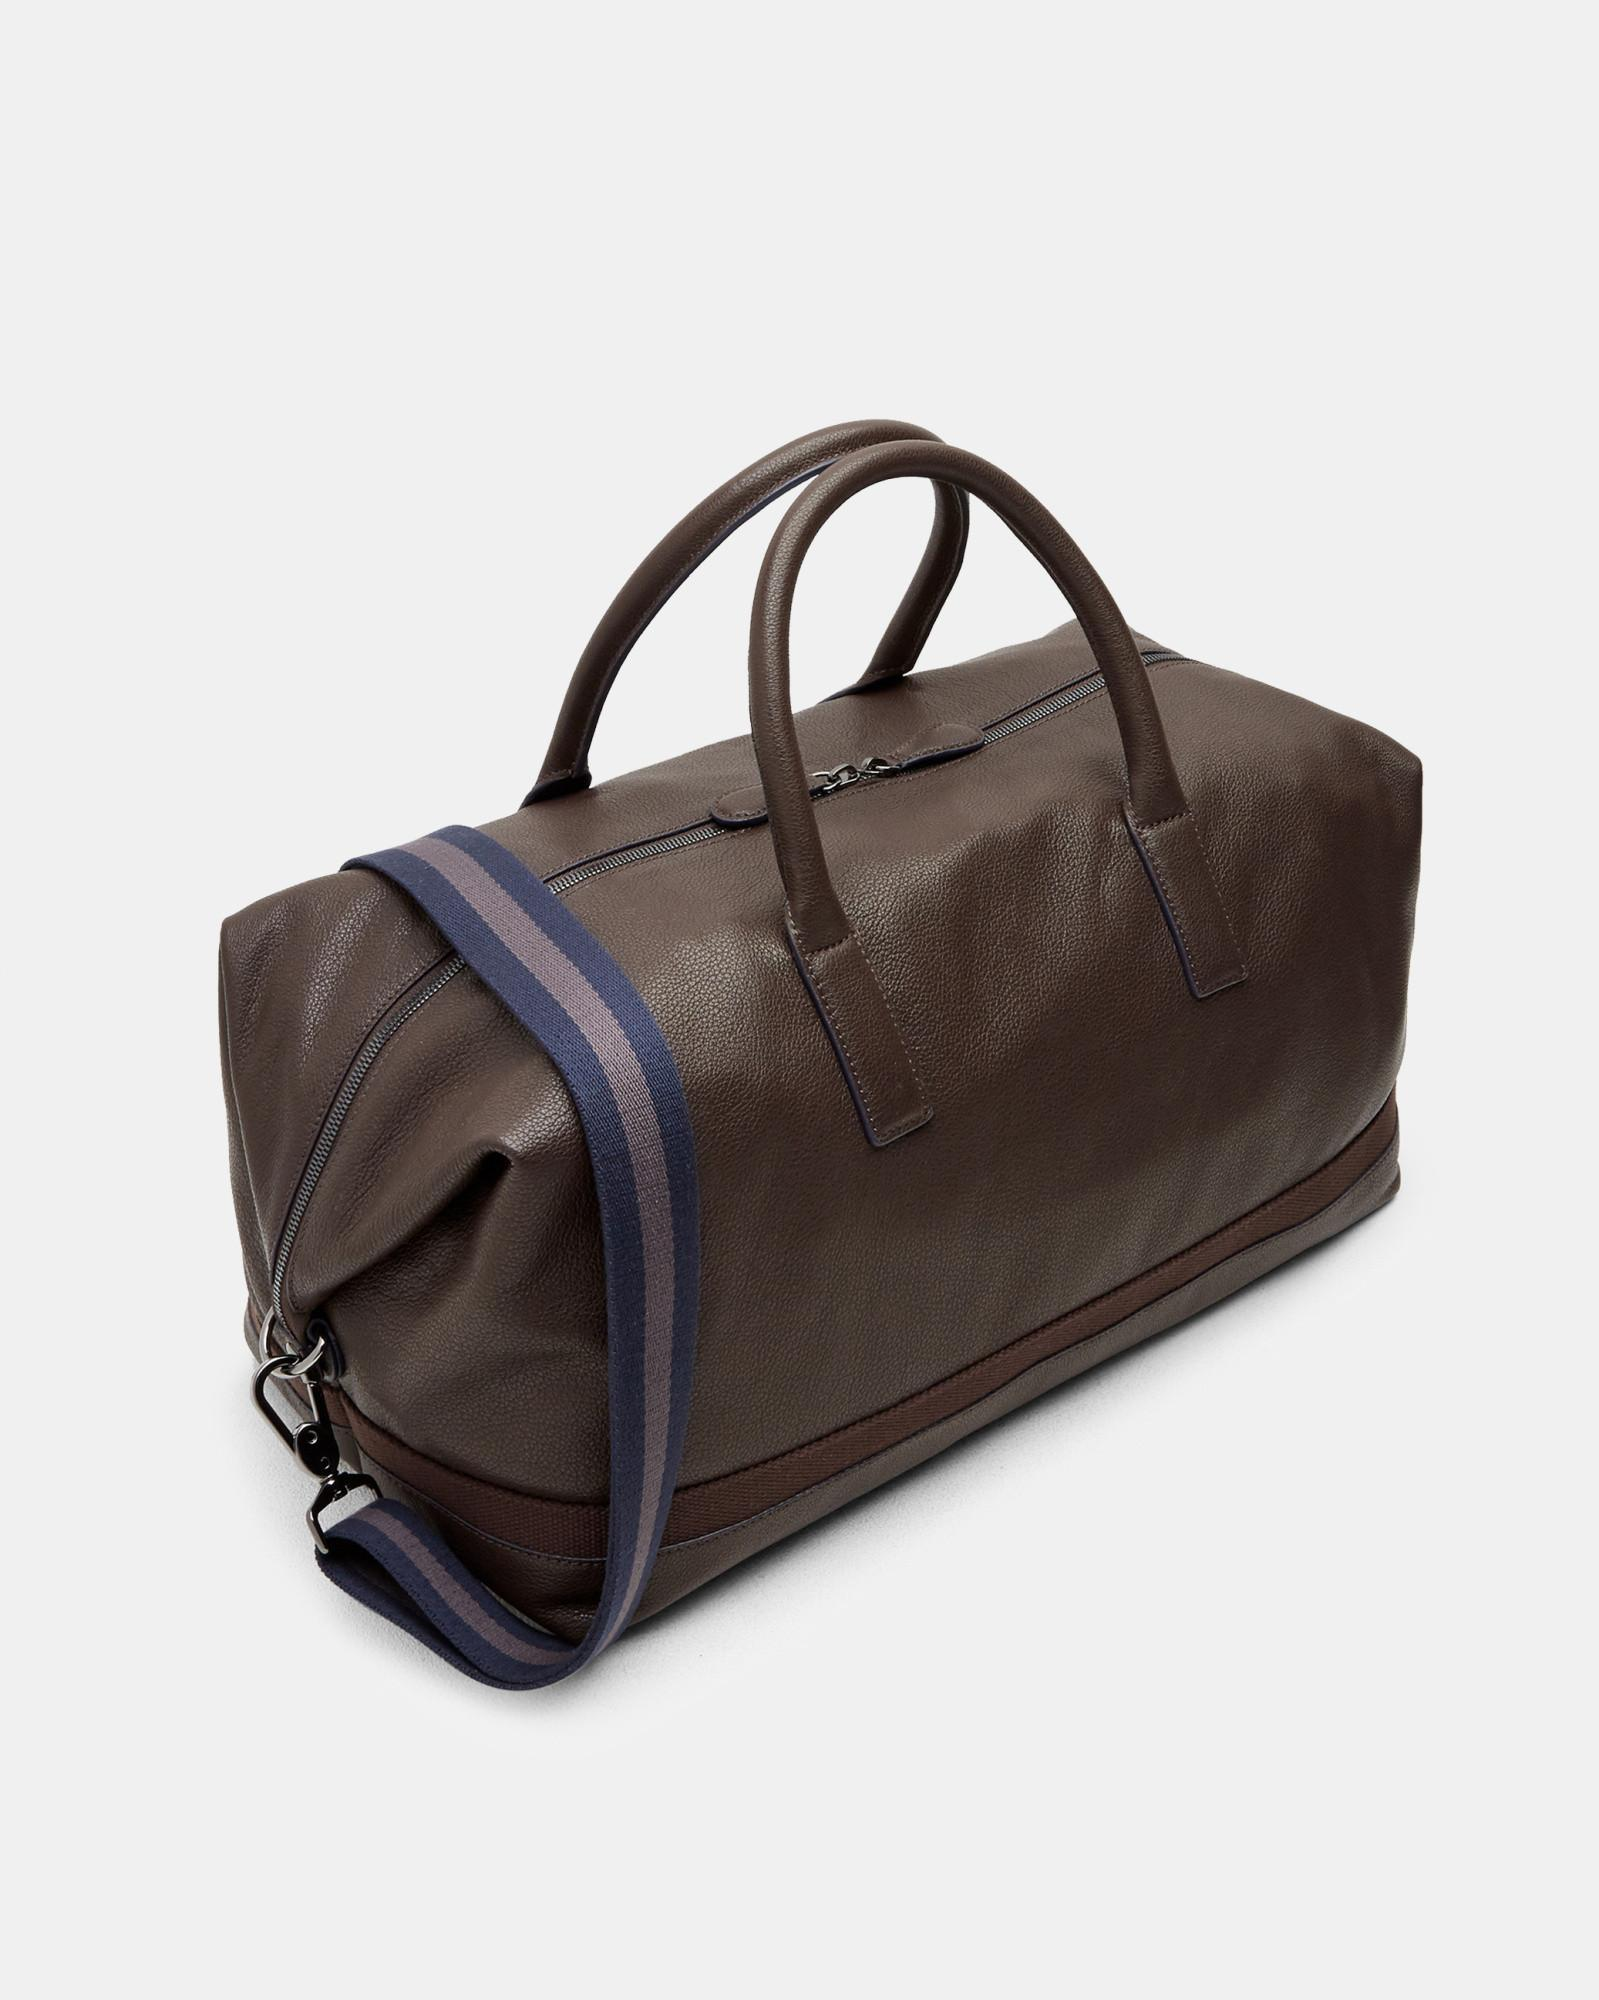 Ted Baker Leather Holdall in Brown for Men - Save 13% - Lyst 6b8249880e2f1